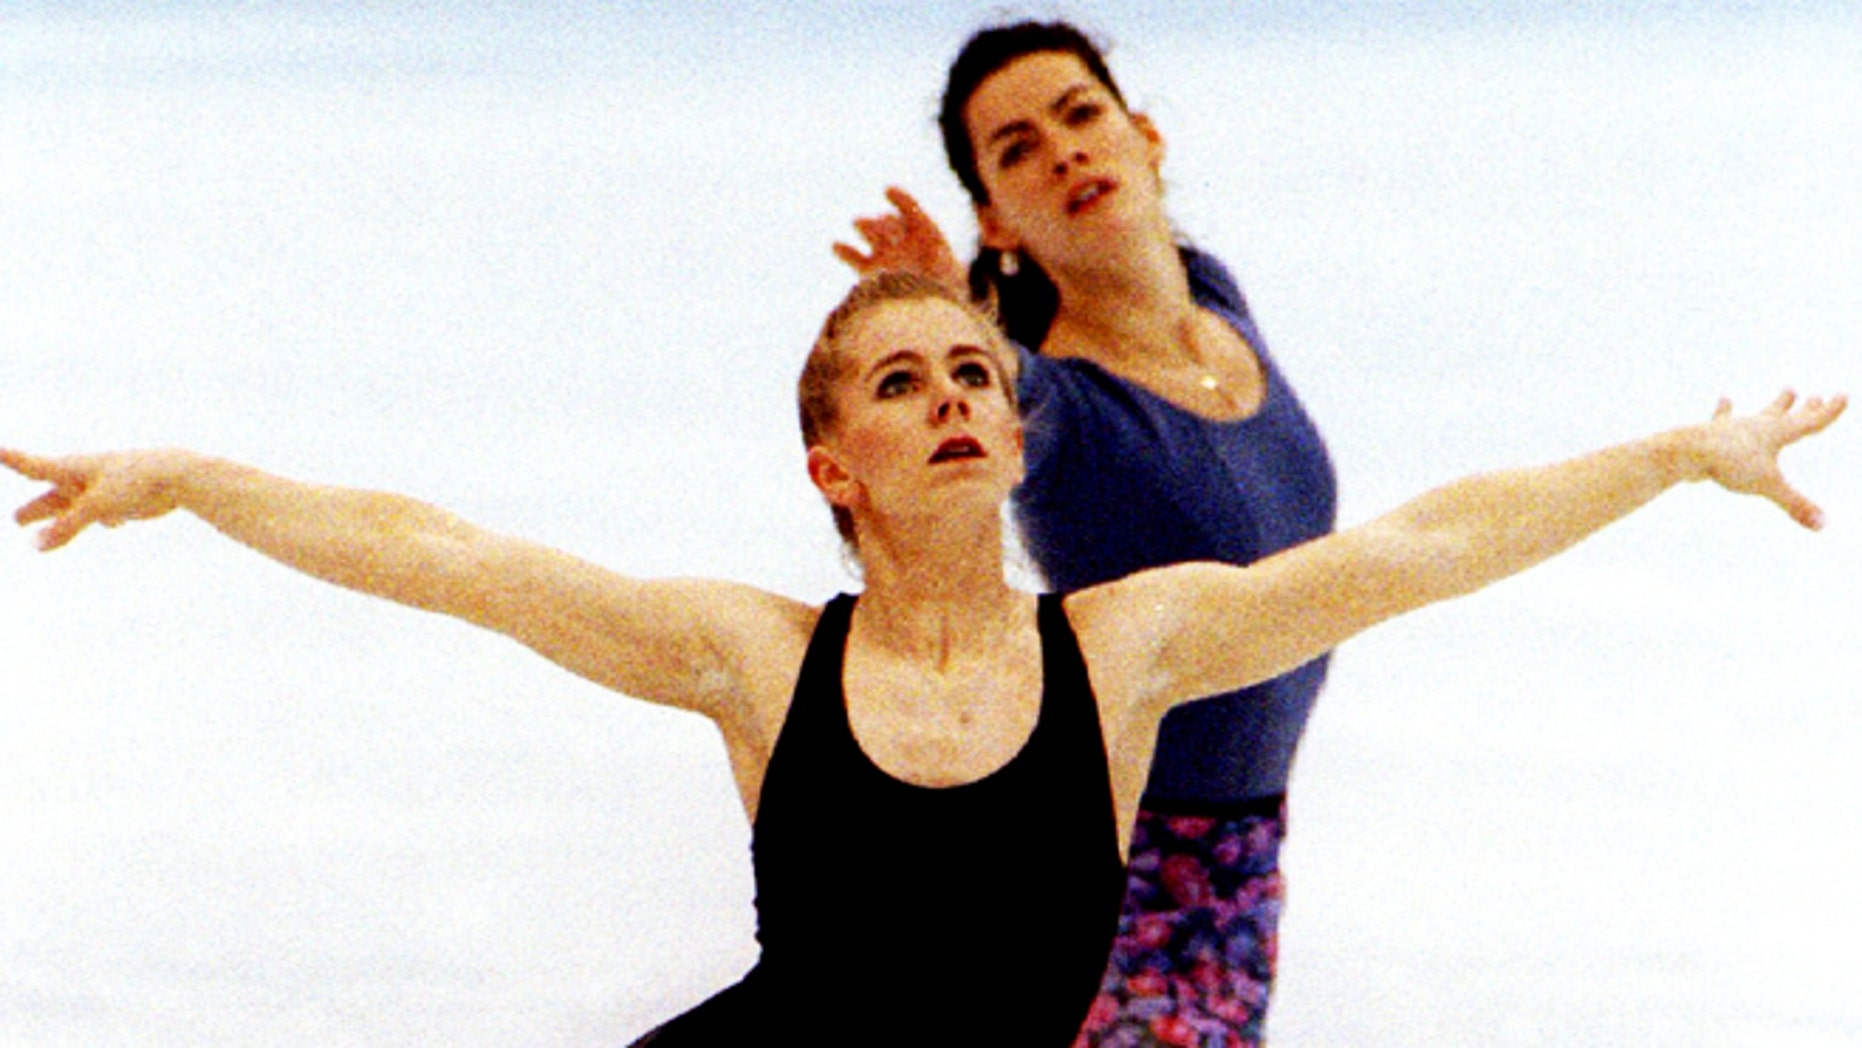 USA figure skaters Tonya Harding (L) and Nancy Kerrigan practice their technical programmes together during a practice session at Hamar's Olympic Amphitheatre on February 22 - RTXFH8S